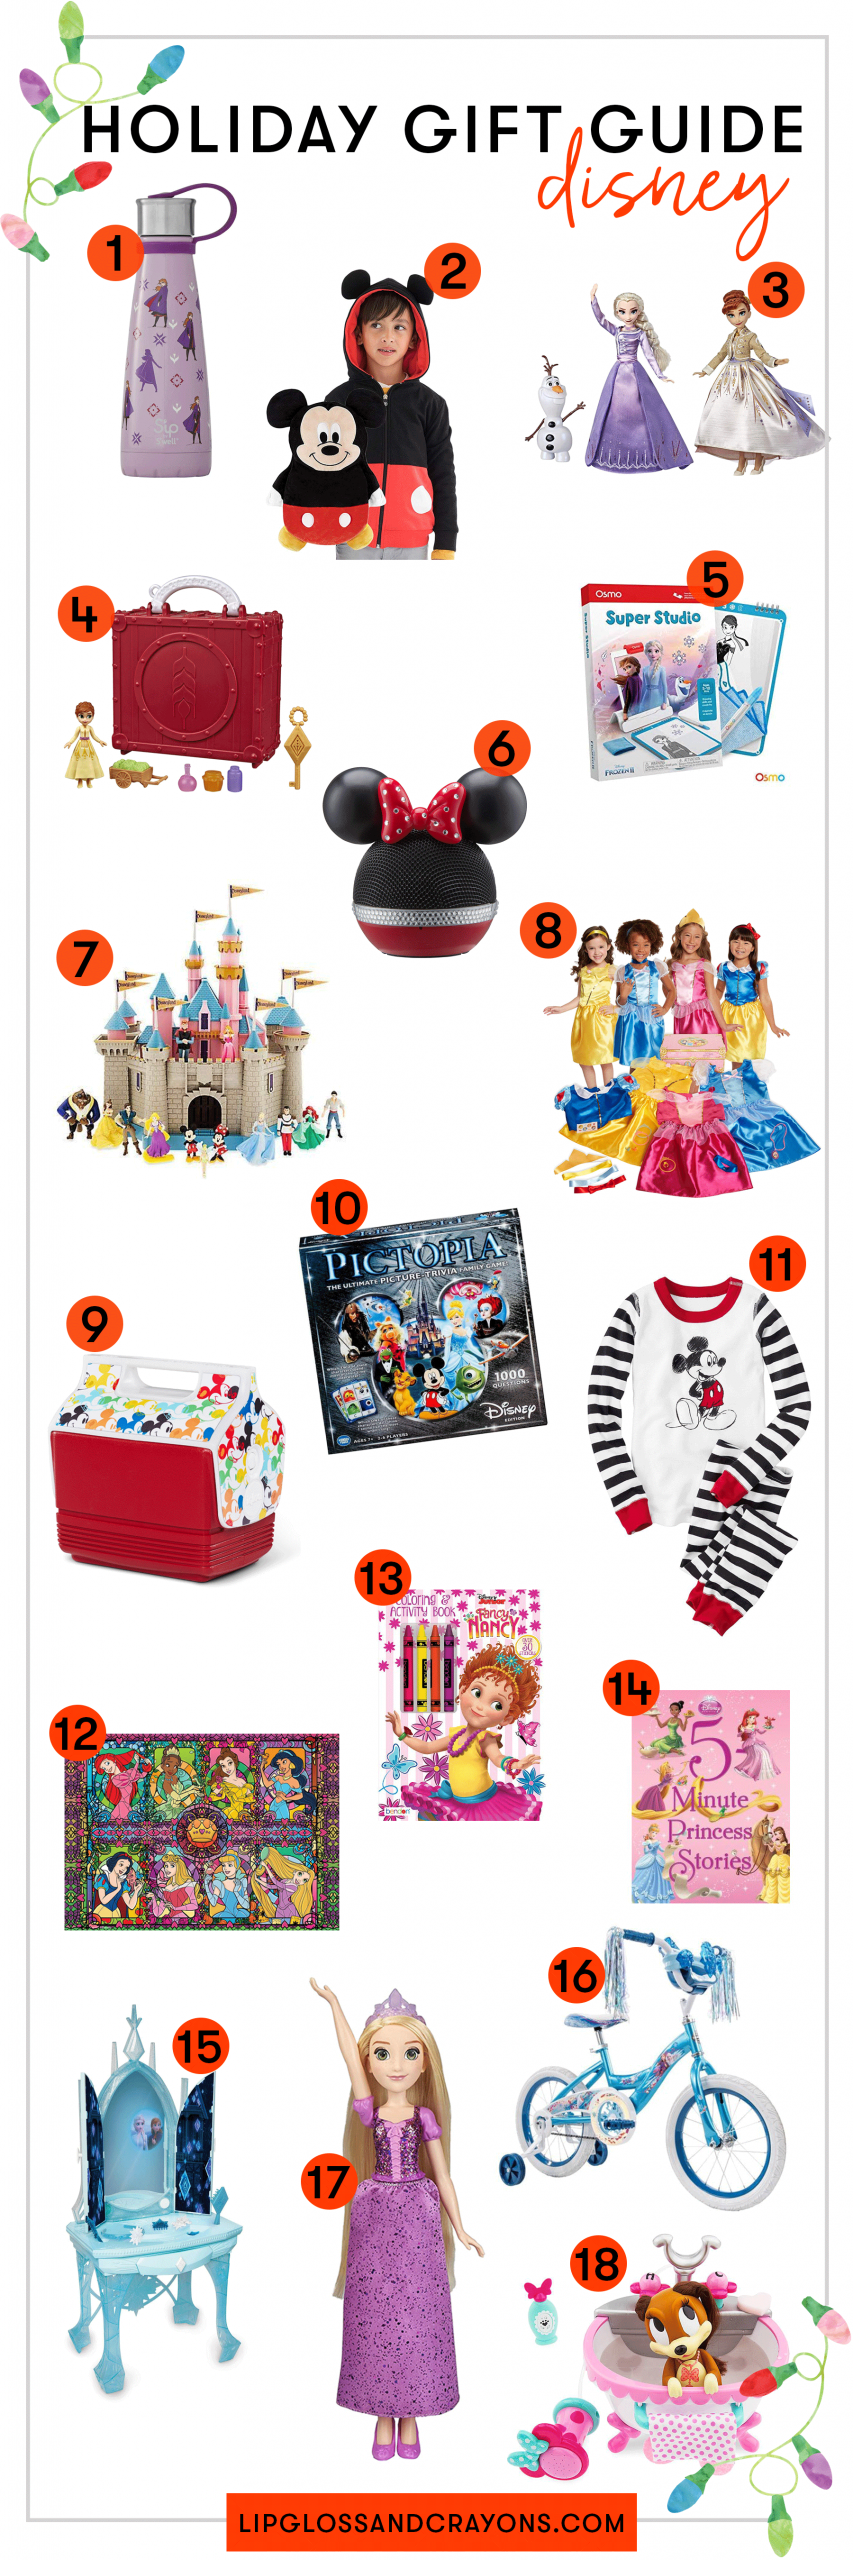 Looking for the best Disney themed holiday gifts? This ultimate Disney Gift Guide shares our favorite Disney present ideas!